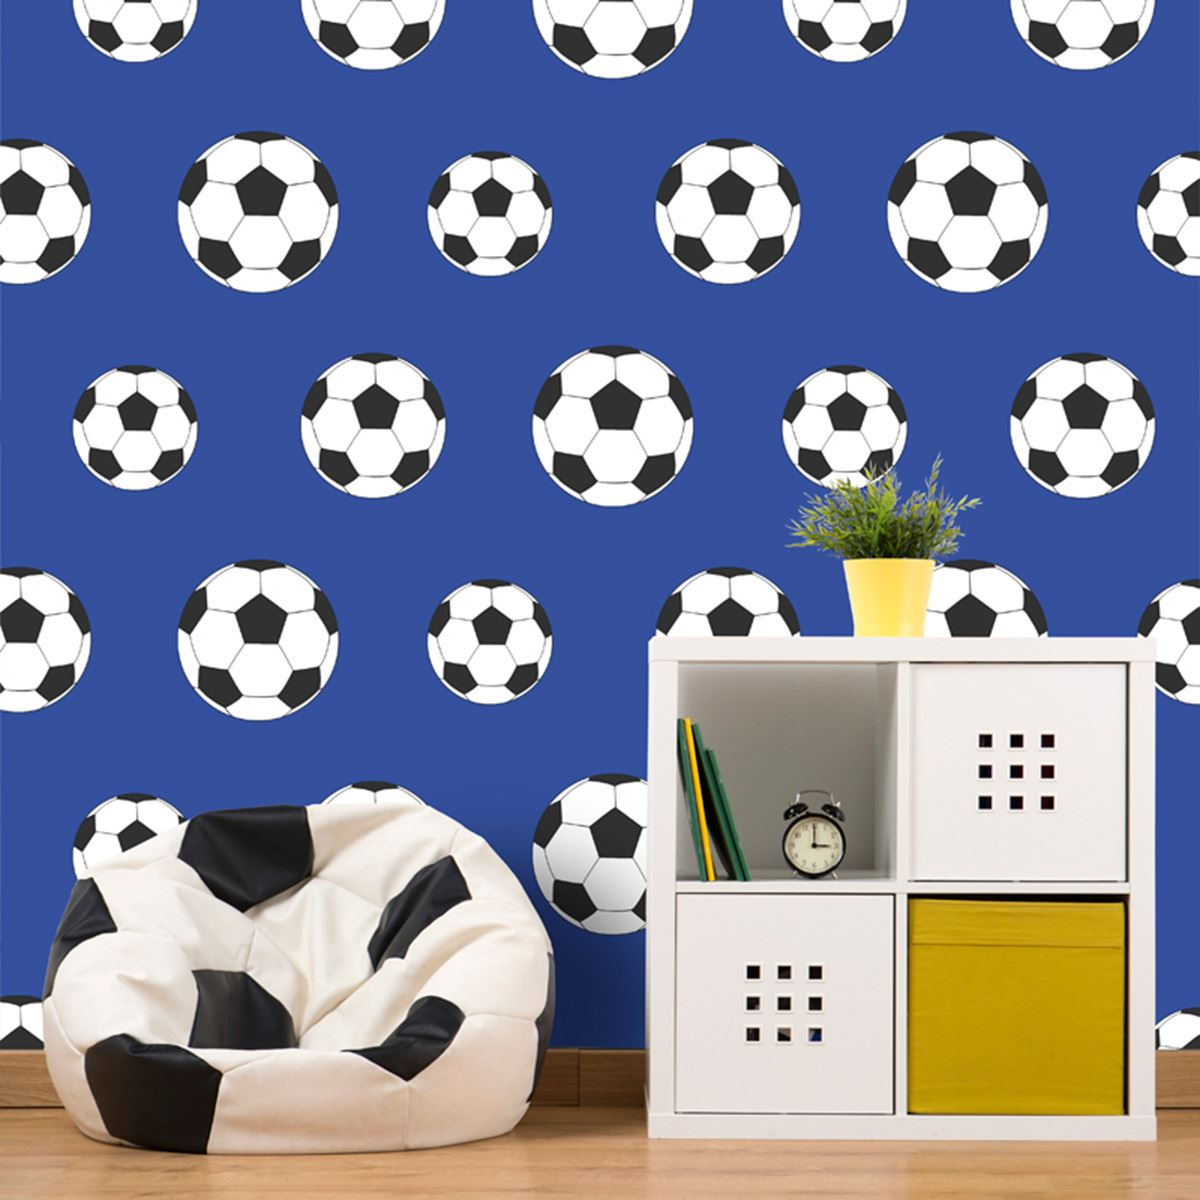 GOAL FOOTBALL WALLPAPER DARK BLUE 9721 BELGRAVIA DECOR KIDS BOYS 1200x1200